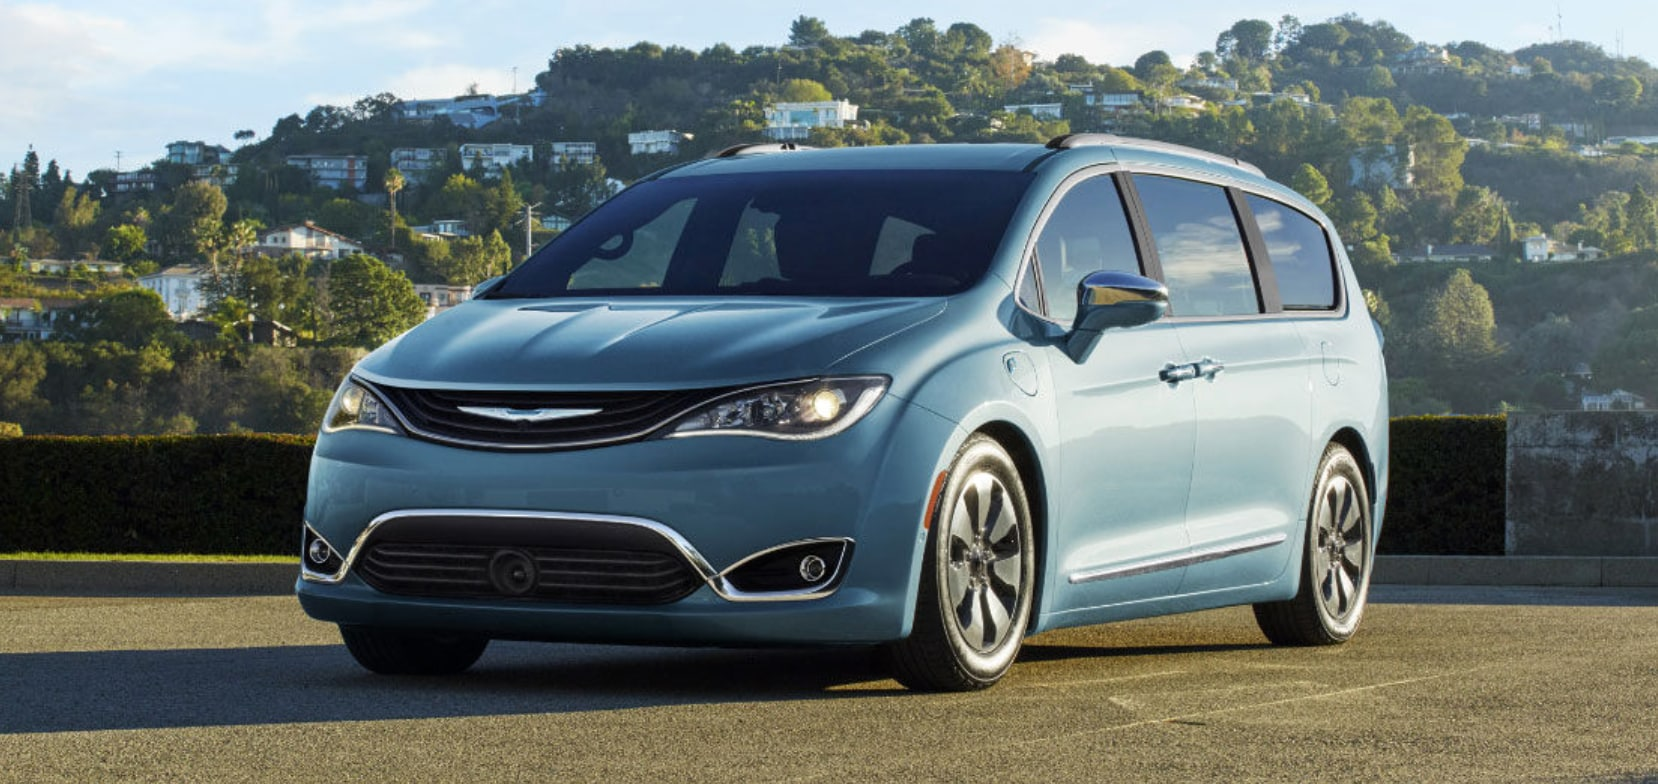 2017 chrysler pacifica for sale long island ny. Black Bedroom Furniture Sets. Home Design Ideas